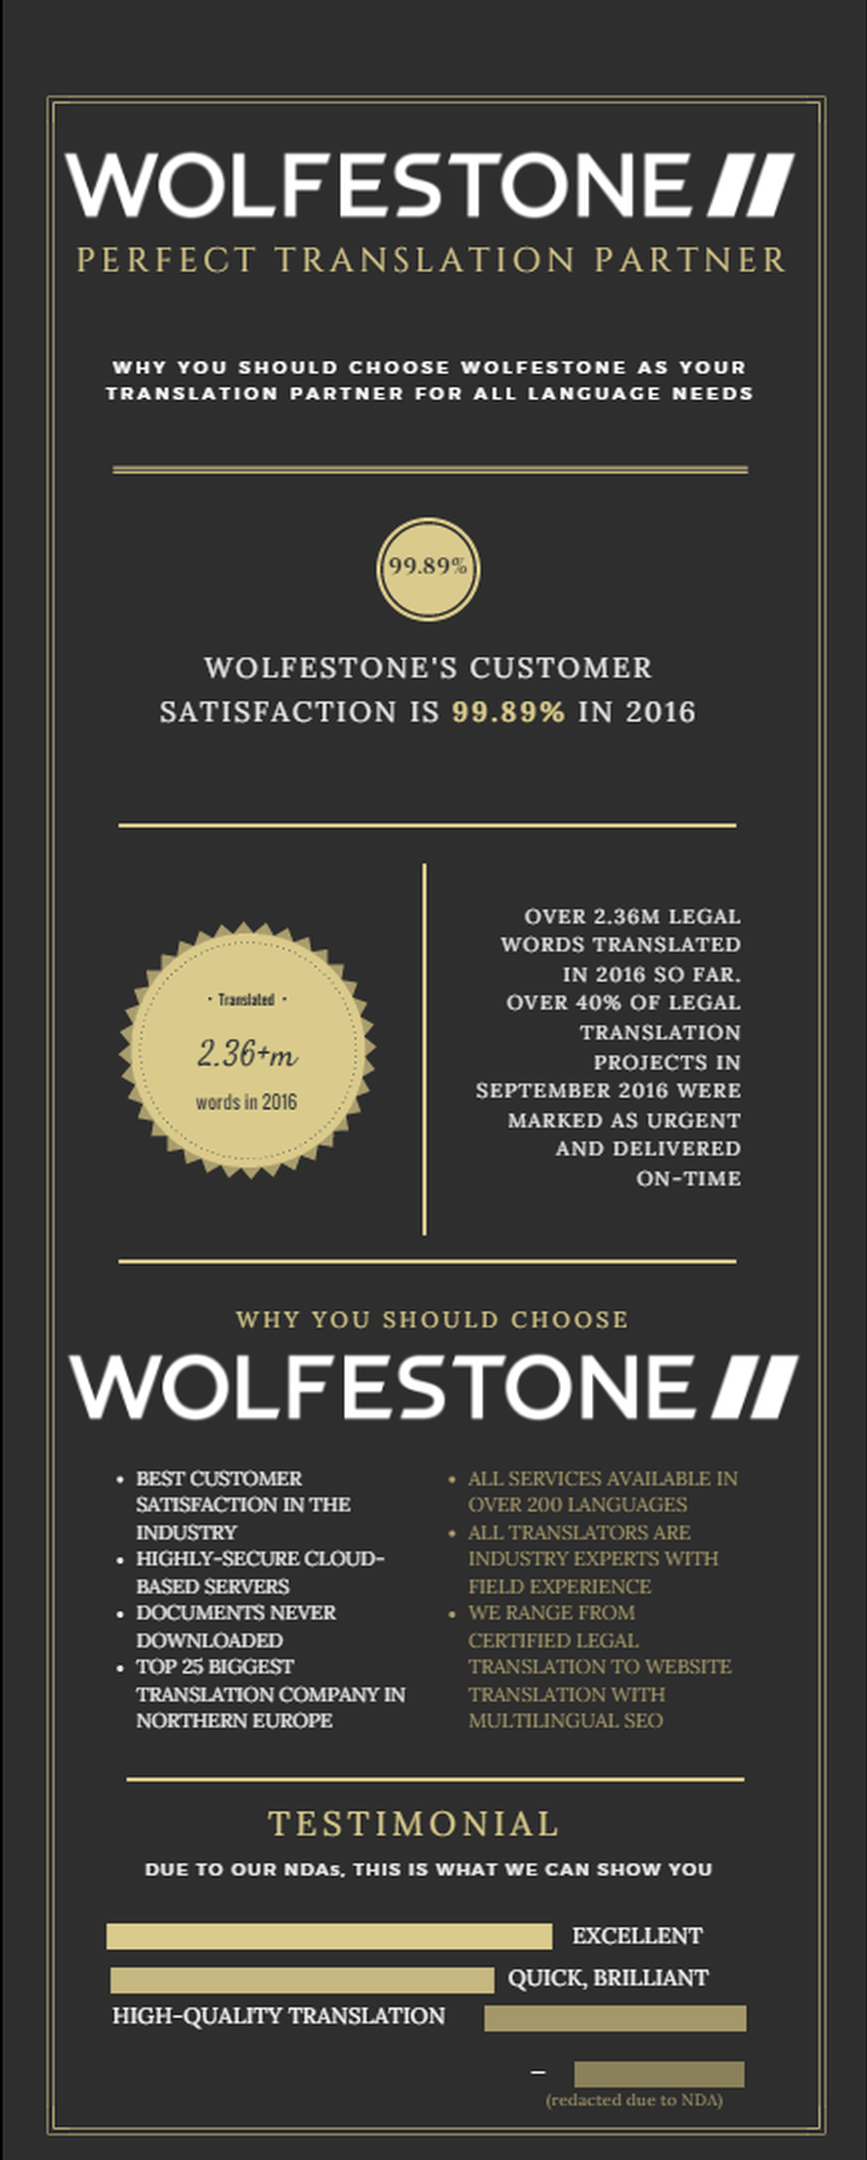 Why Wolfestone is your perfect legal translation partner